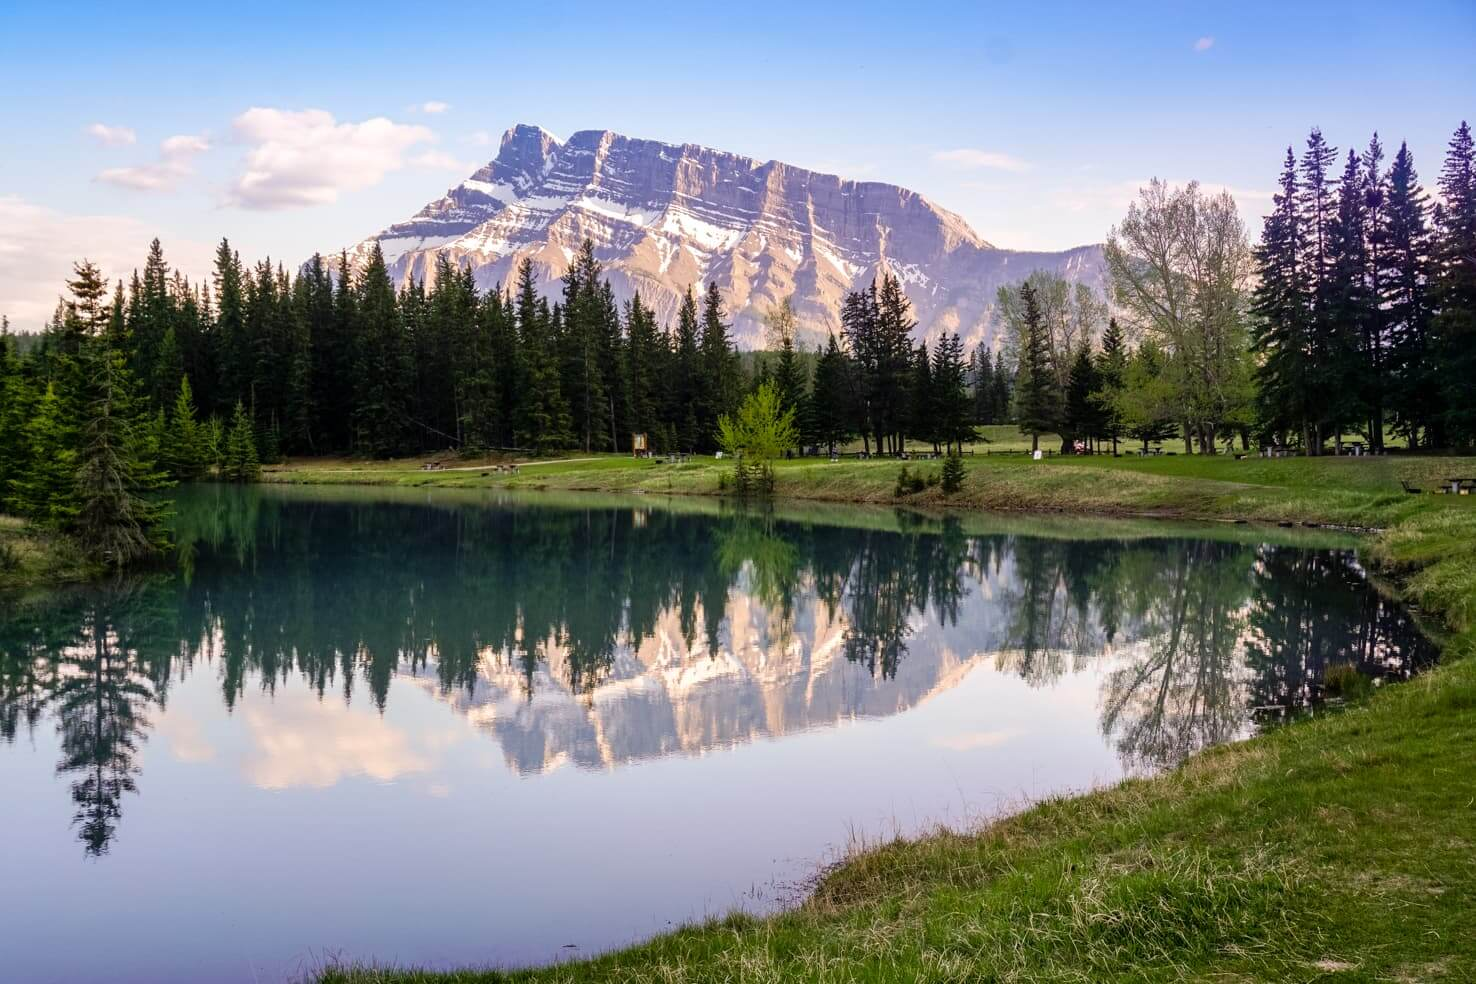 Camping in Banff National Park - Cascade Ponds